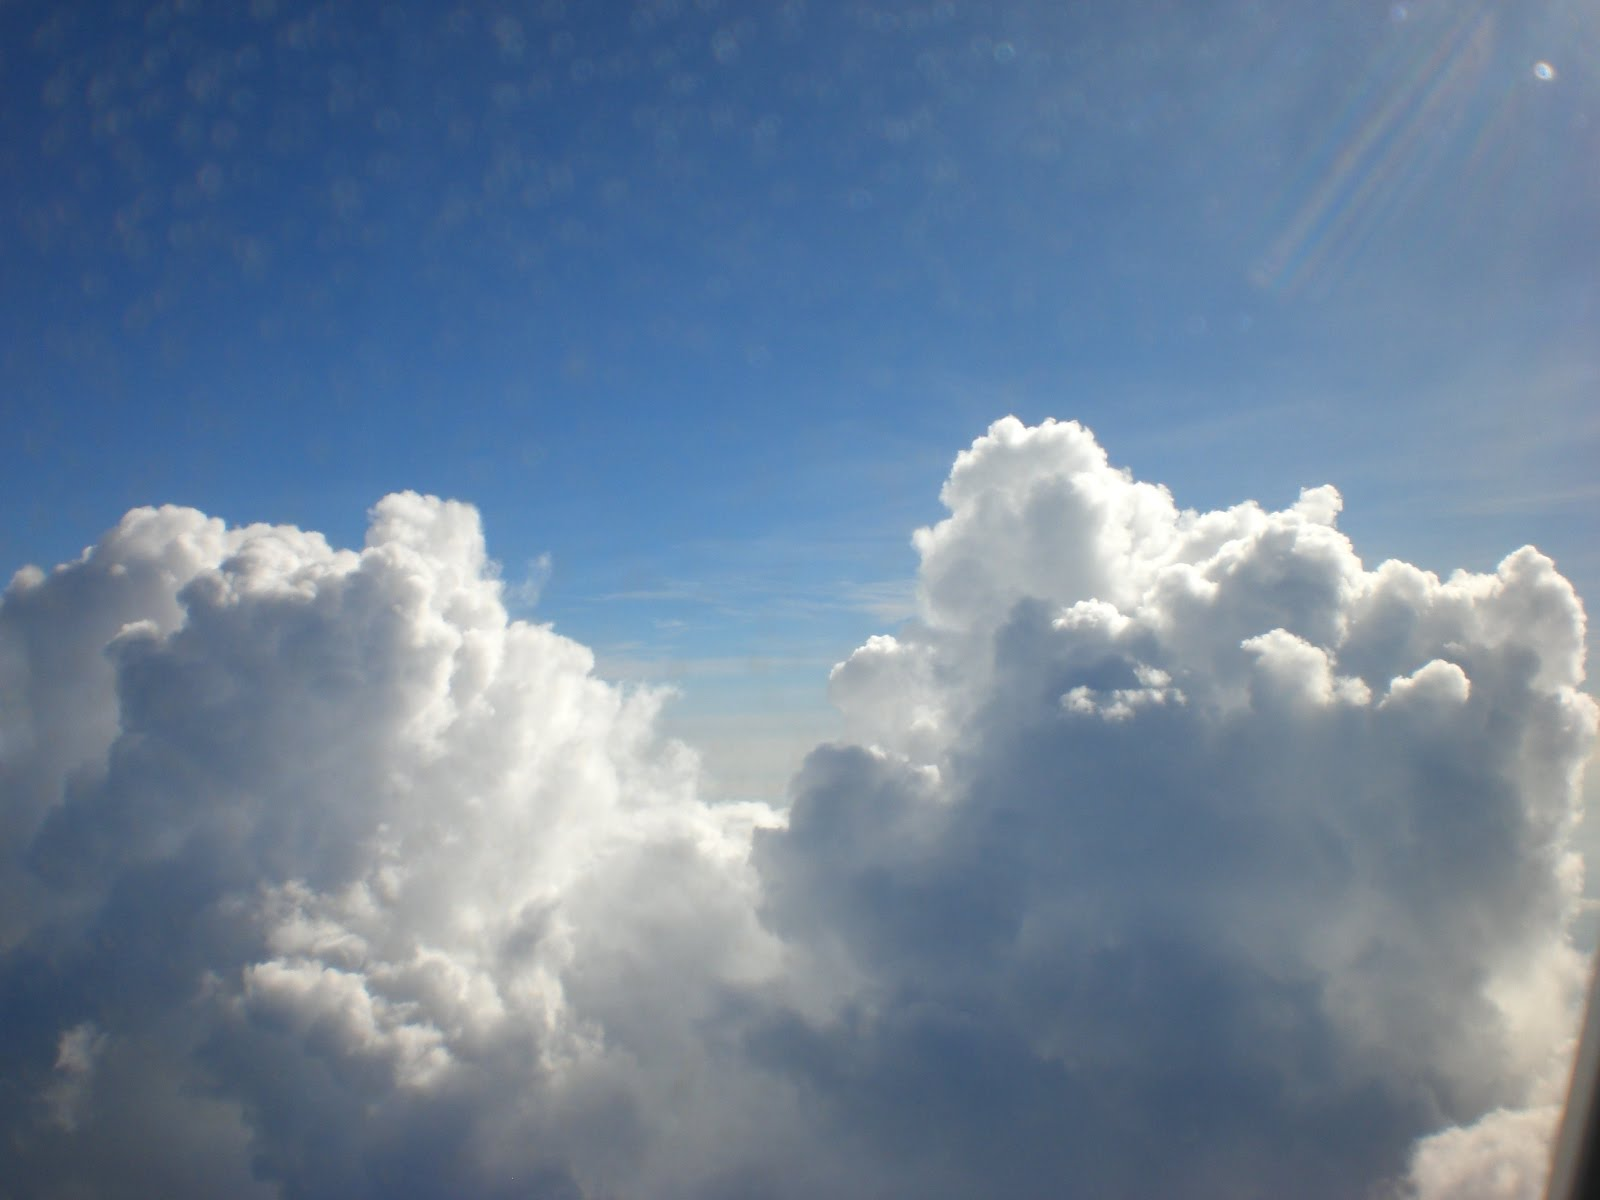 heart, mind, and soulexposed!: seeing god through the clouds!